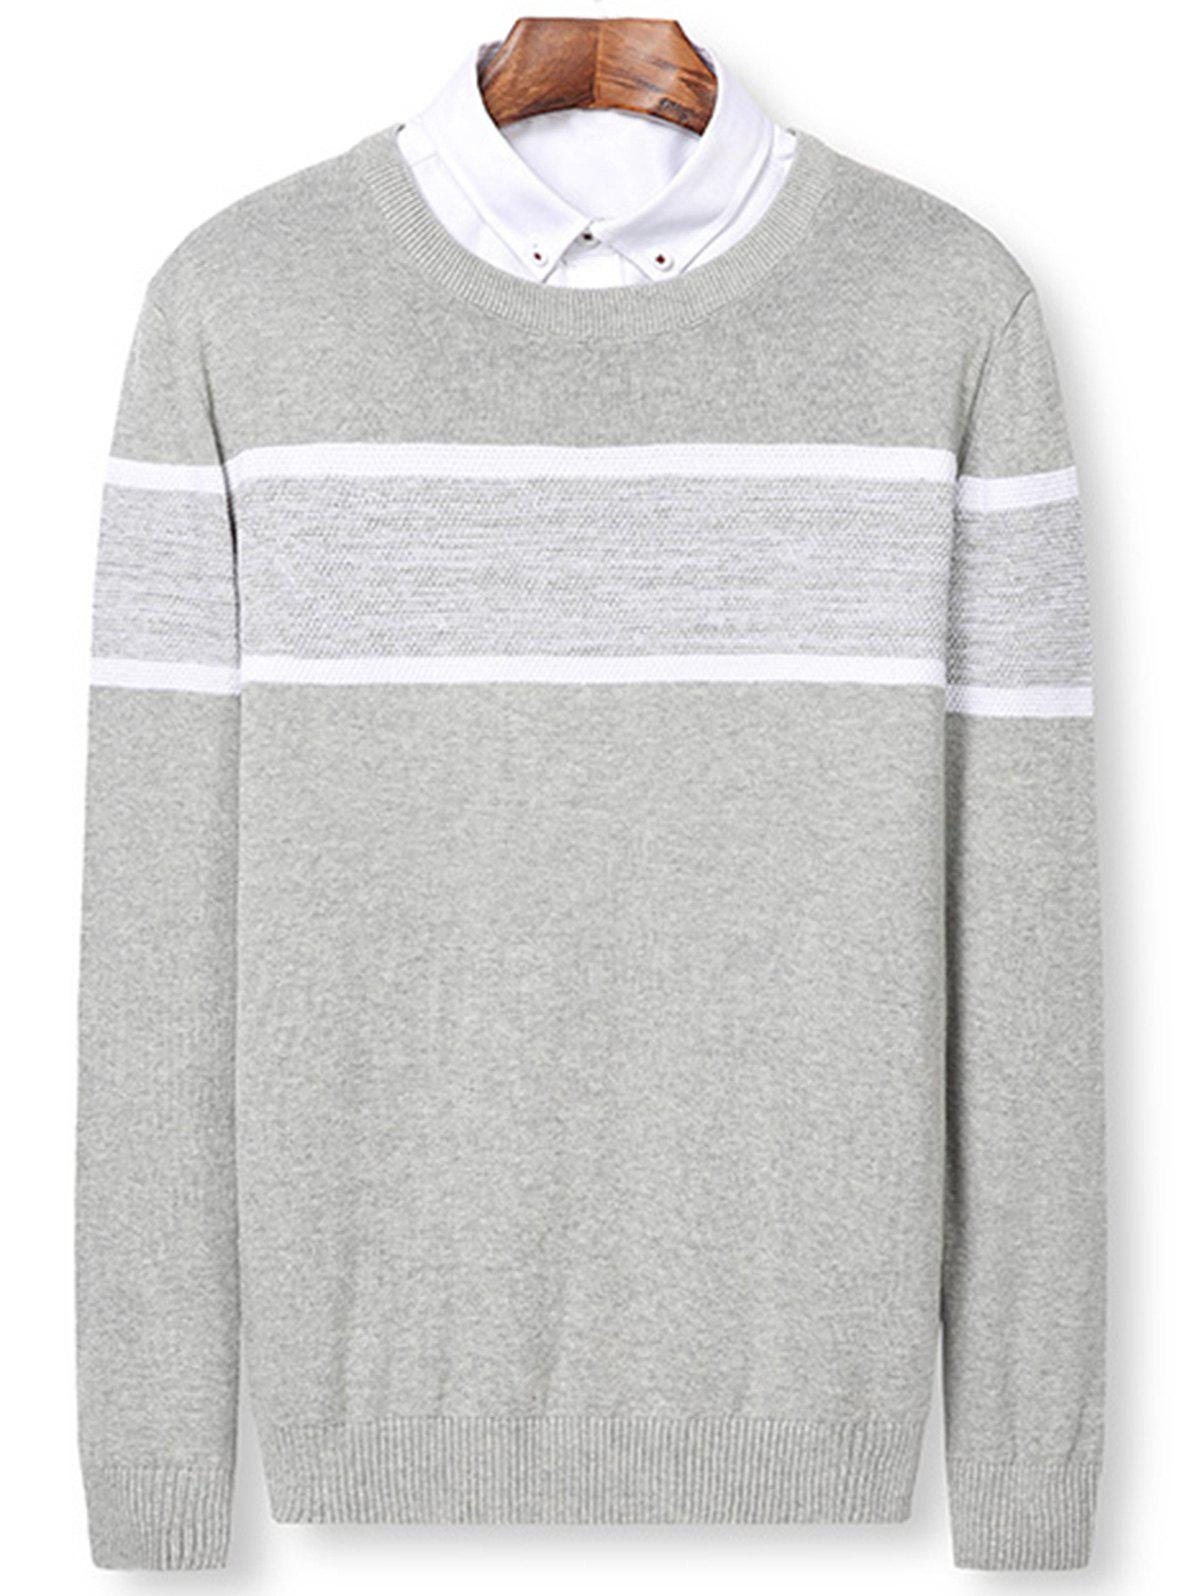 Color Block Panel Knitted Pullover Sweater - LIGHT GRAY XL